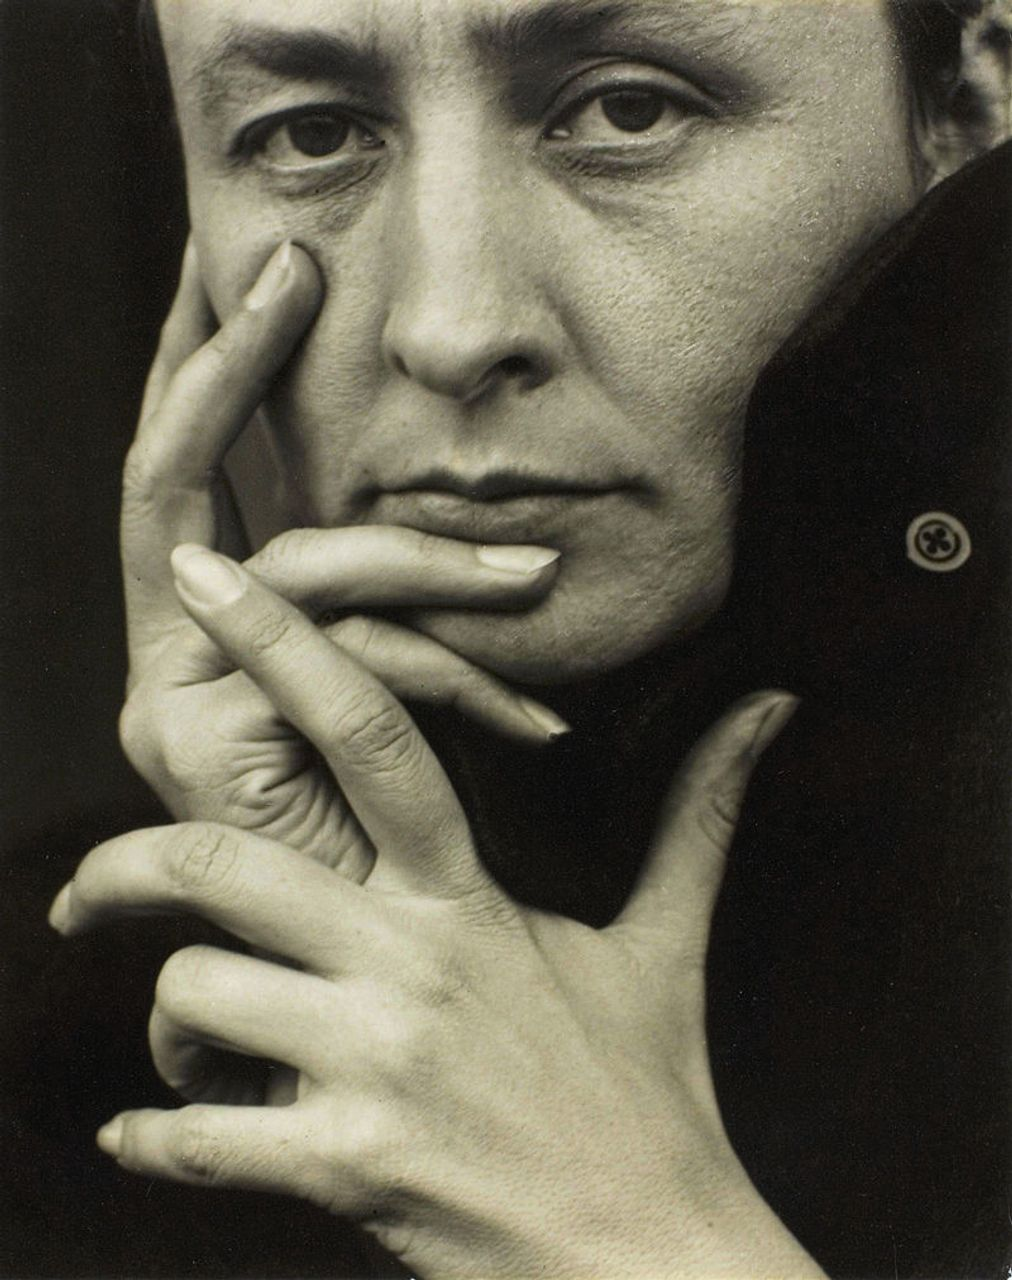 Georgia O'Keeffe, photographed by Alfred Stieglitz, 1918